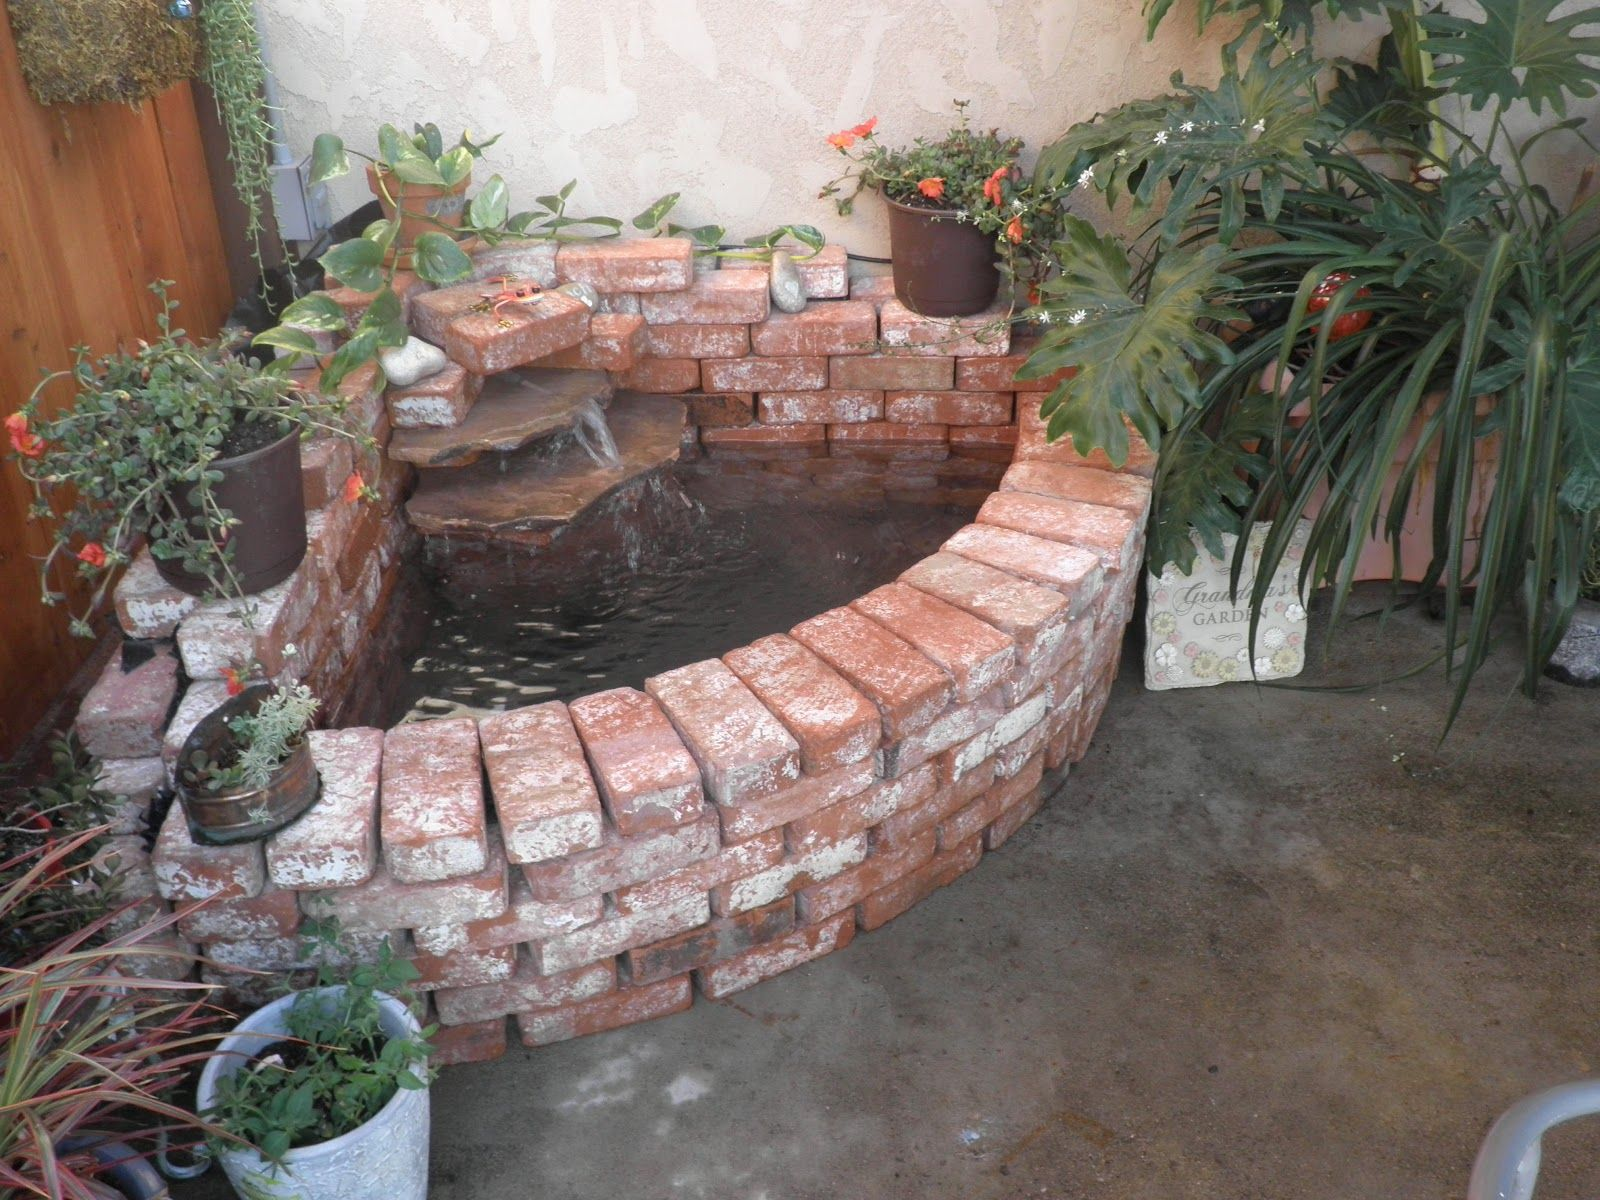 Brick pond idea things i love pinterest bricks for Build your own waterfall pond